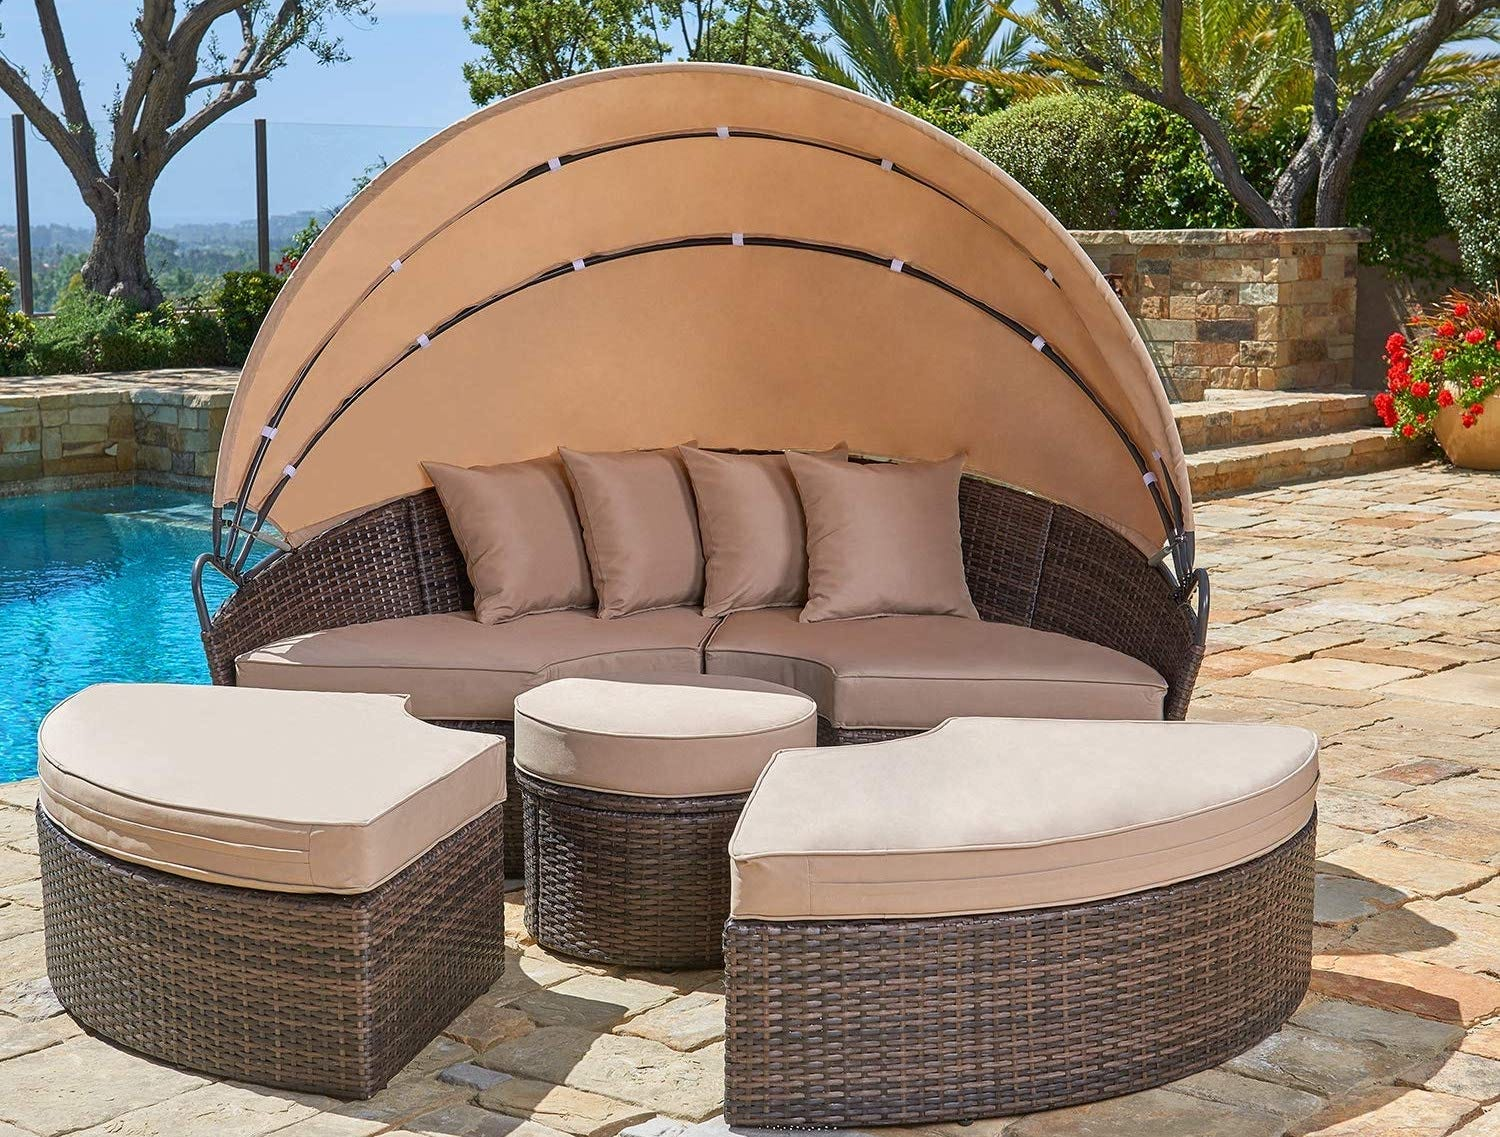 A beige outdoor daybed with a rounded canopy